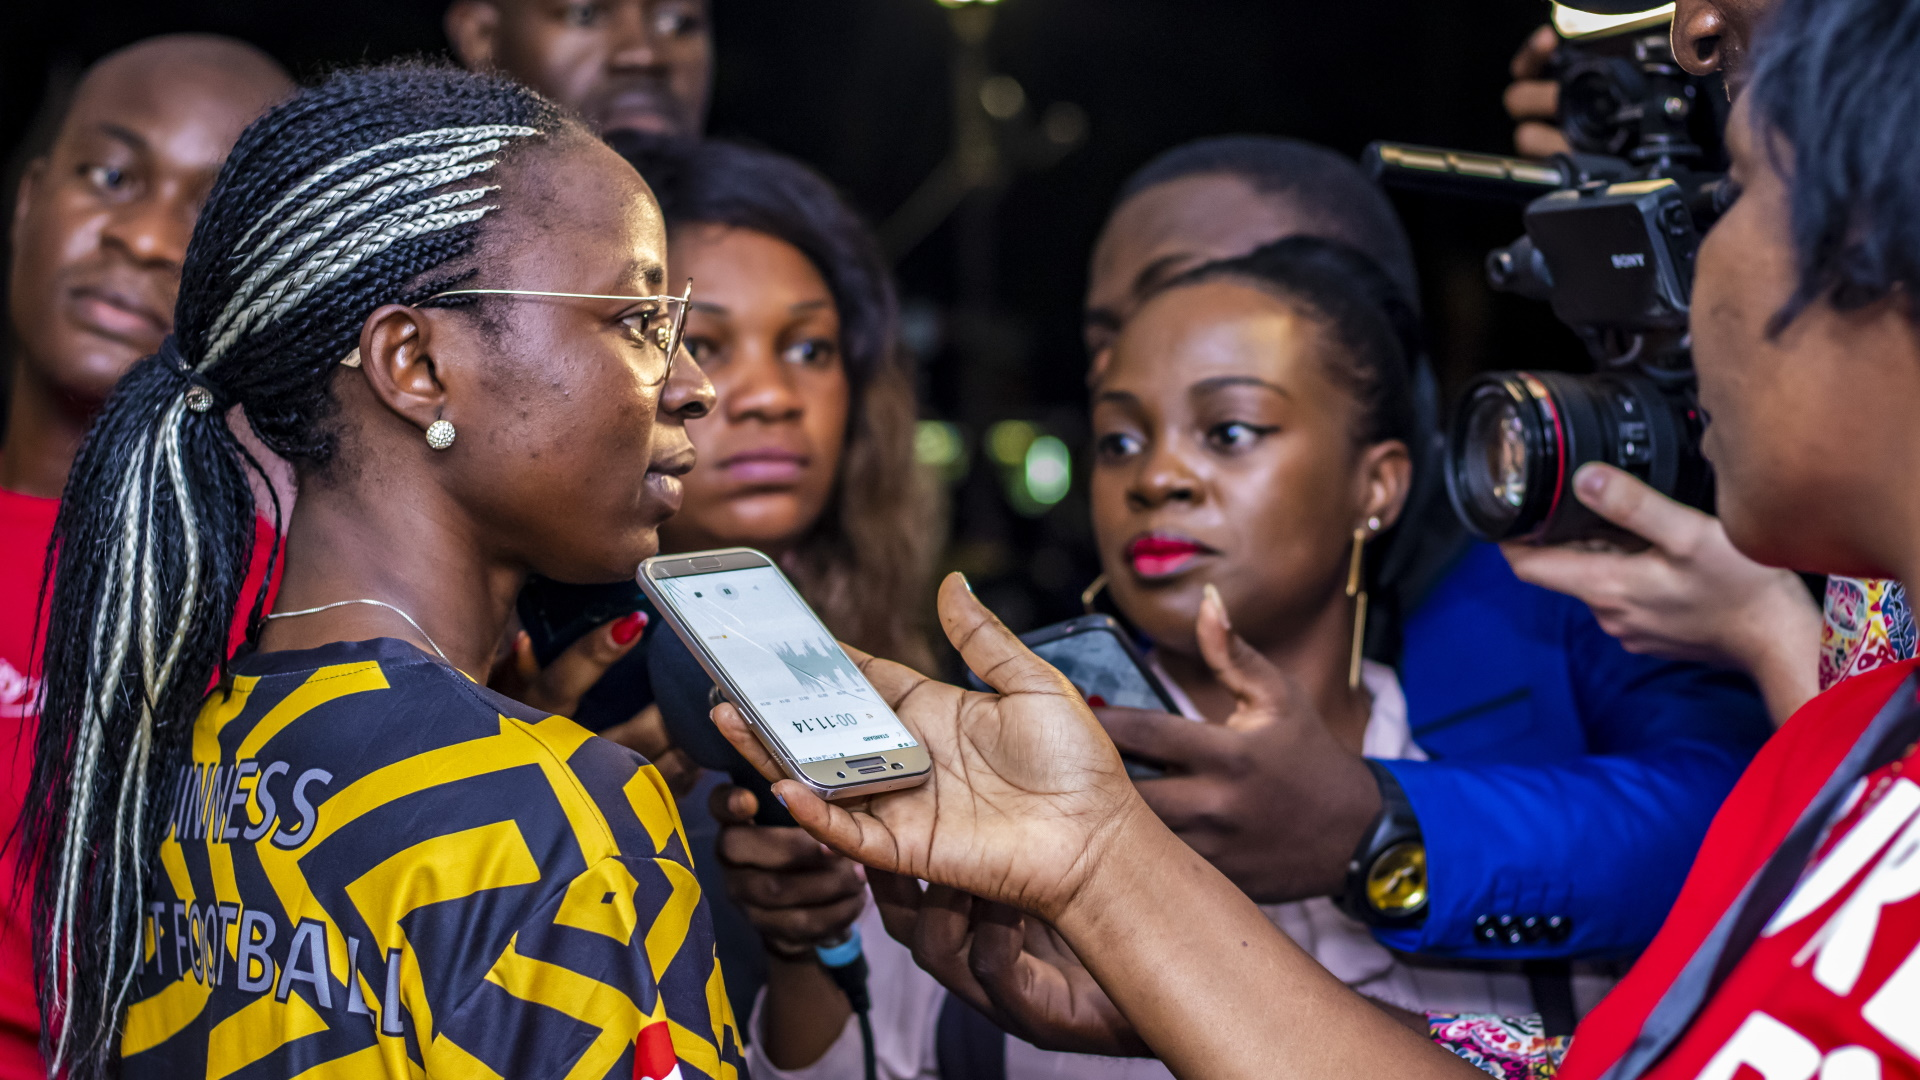 'I will never forget' - Cameroon's Nchout relives heroic Women's World Cup memories